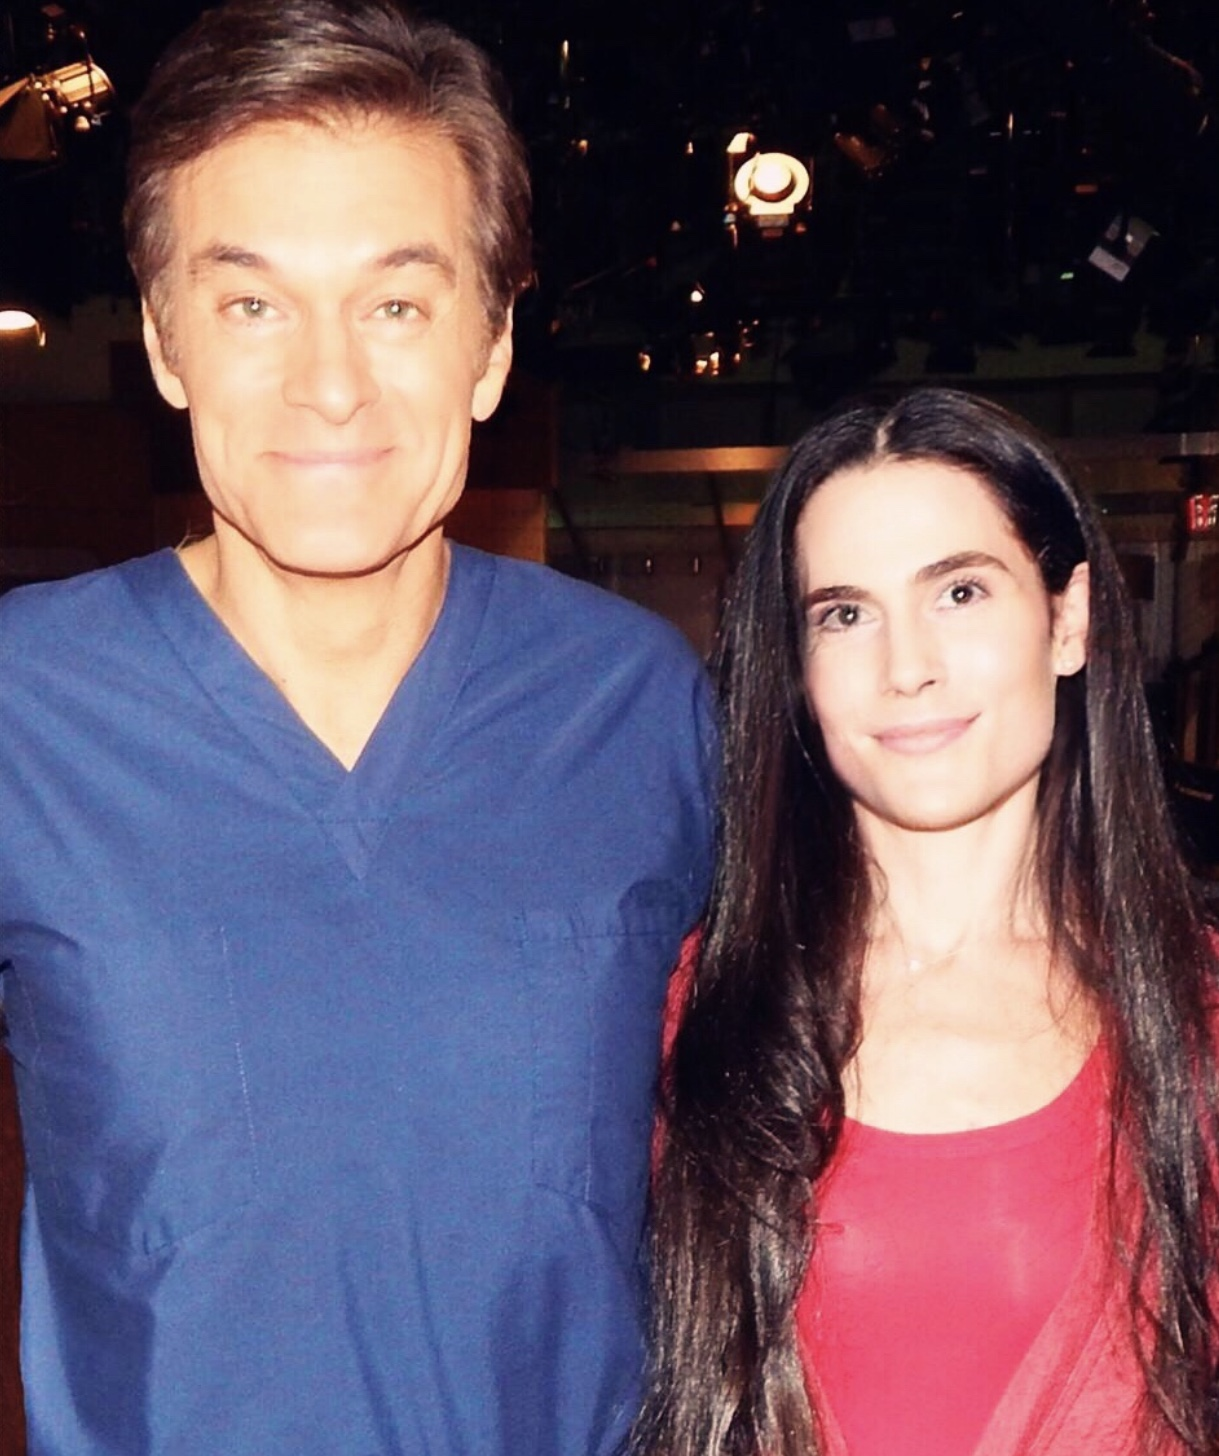 Dr. Mitzner meeting Dr. Oz where he recognized her calming presence and demeanor